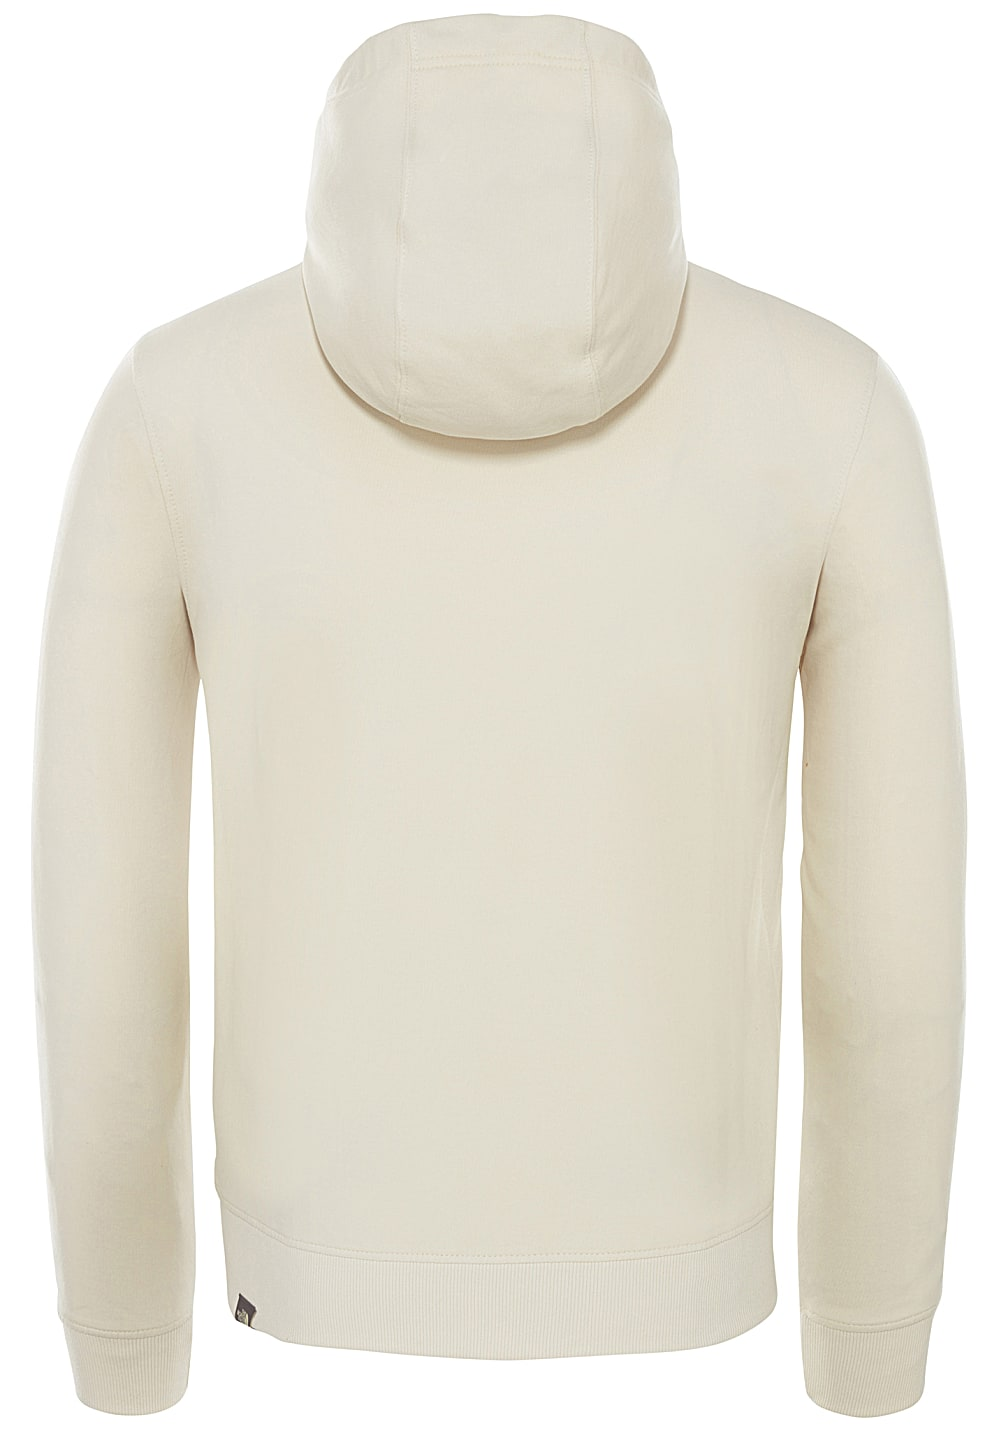 733ce59a557c Previous. Next. New. THE NORTH FACE. Light Drew Peak - Hooded Sweatshirt  for Men